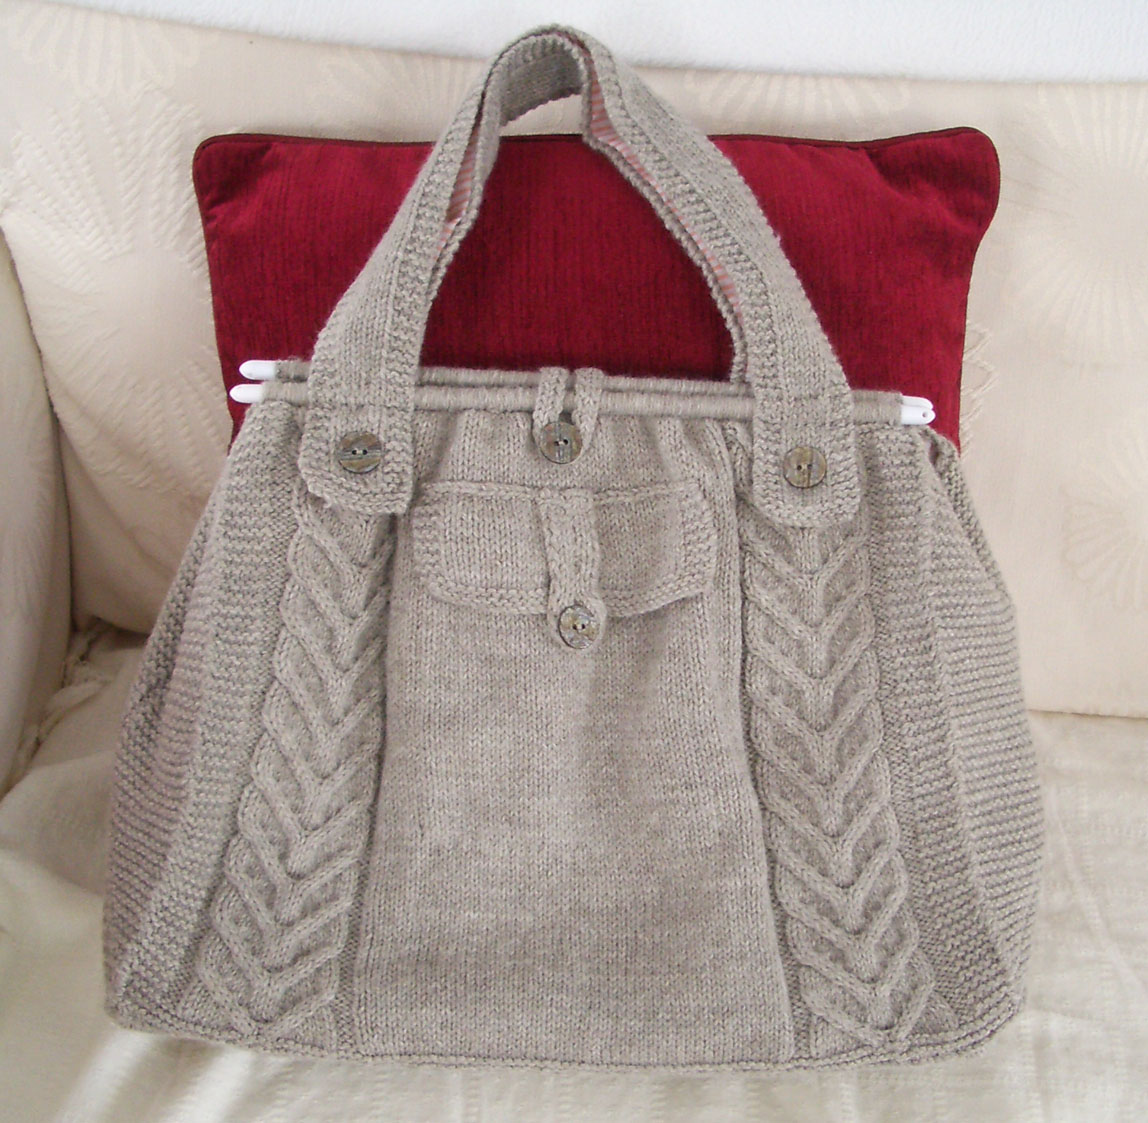 Knitting Bag Pattern : this tote bag is knitted using dk yarn on 3mm needles measurements w ...